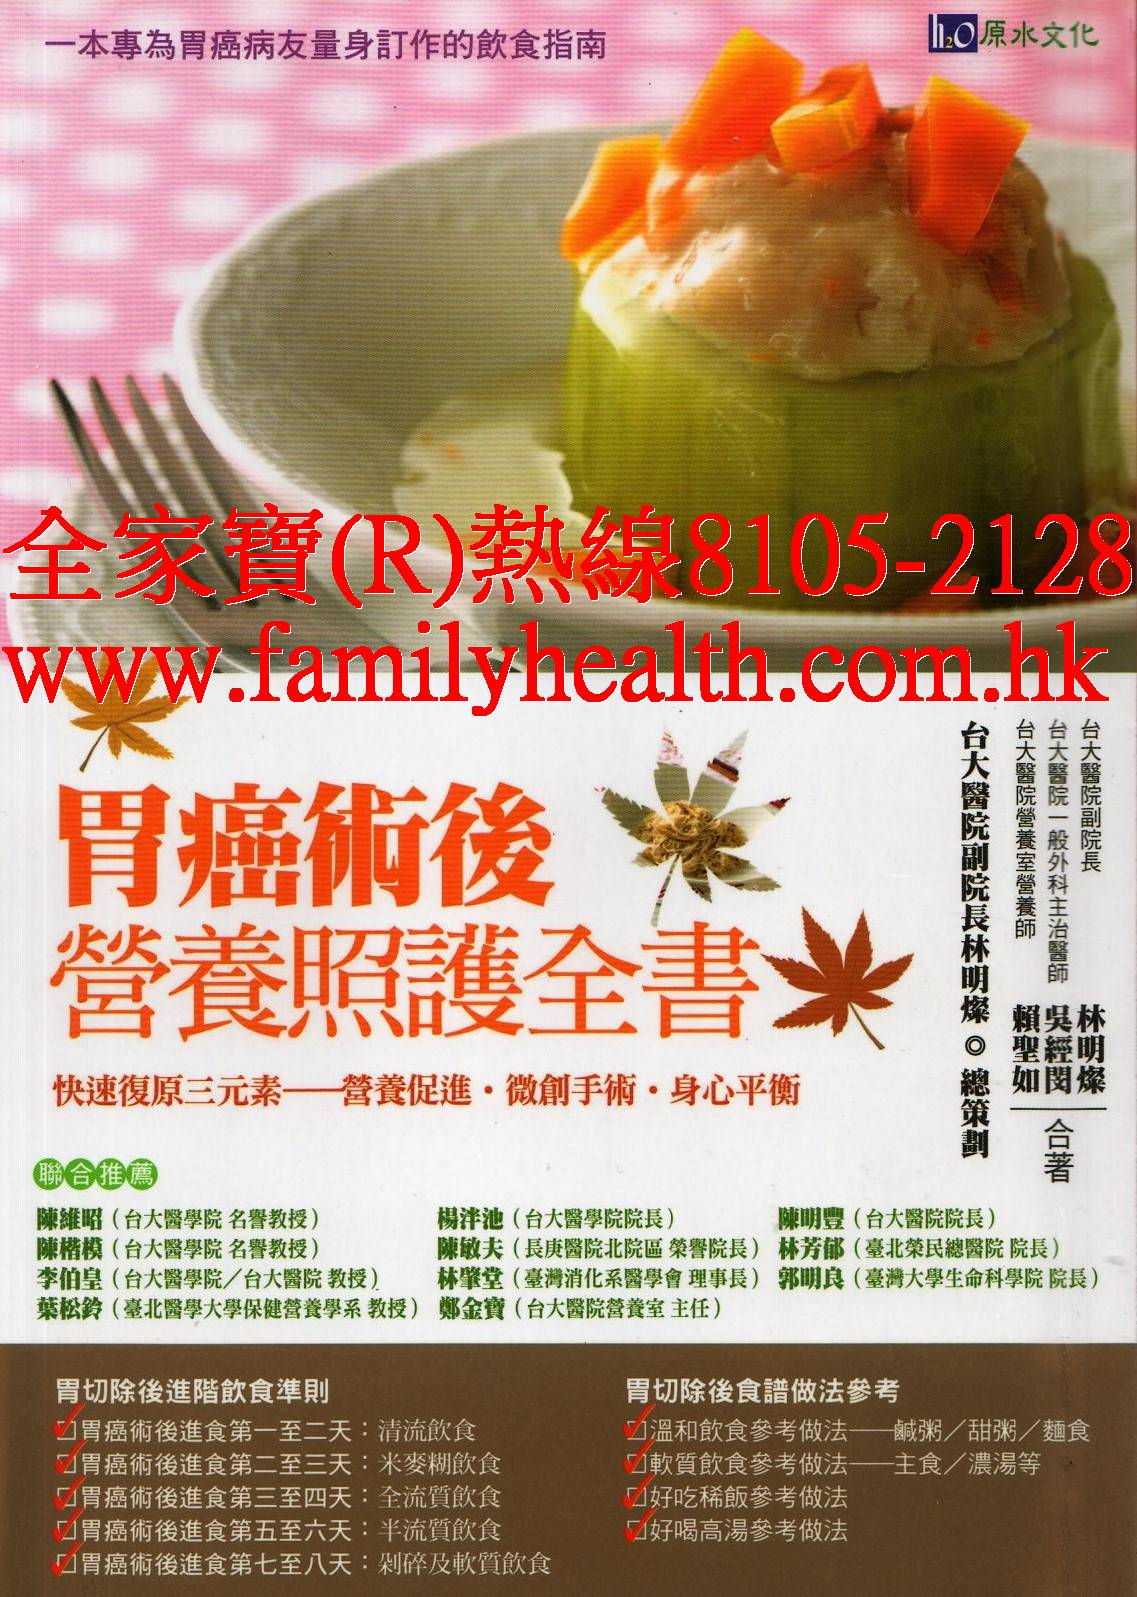 http://www.familyhealth.com.hk/files/full/1164_0.jpg